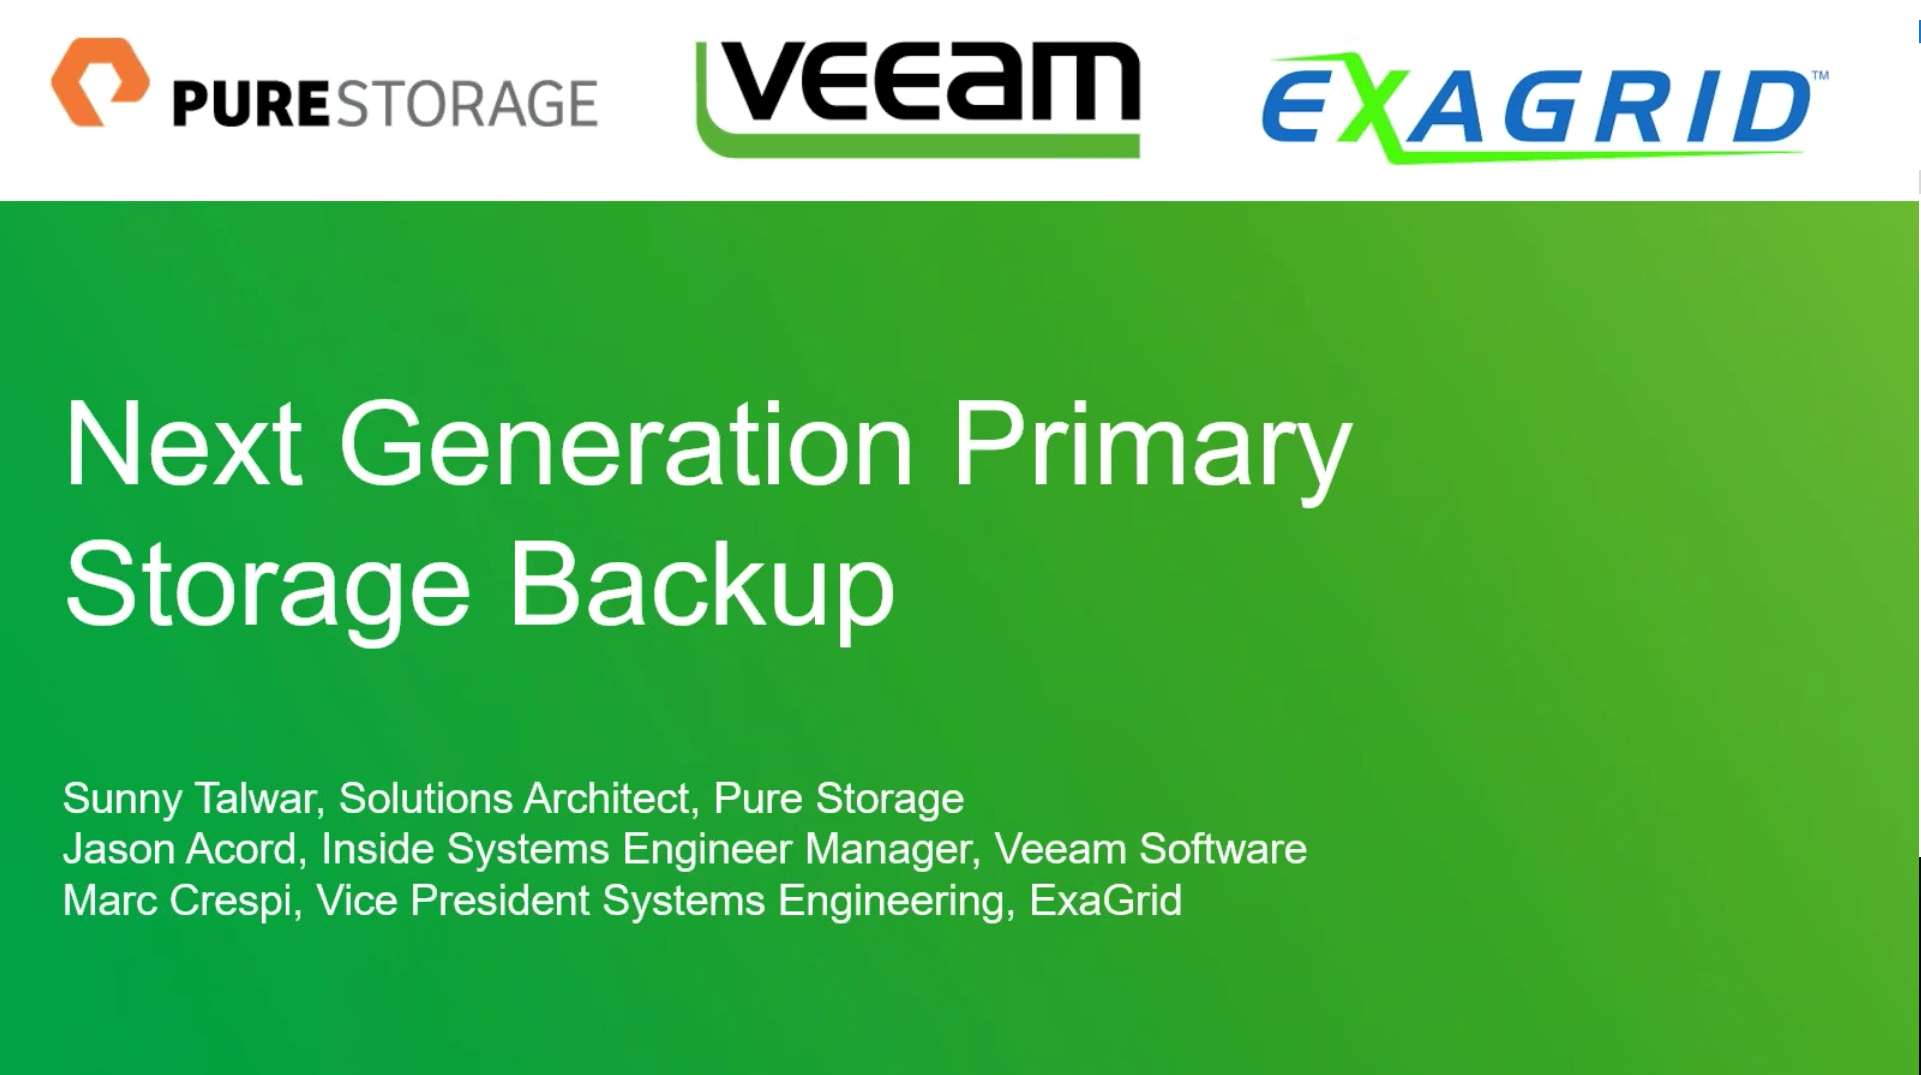 Next generation primary storage and backup